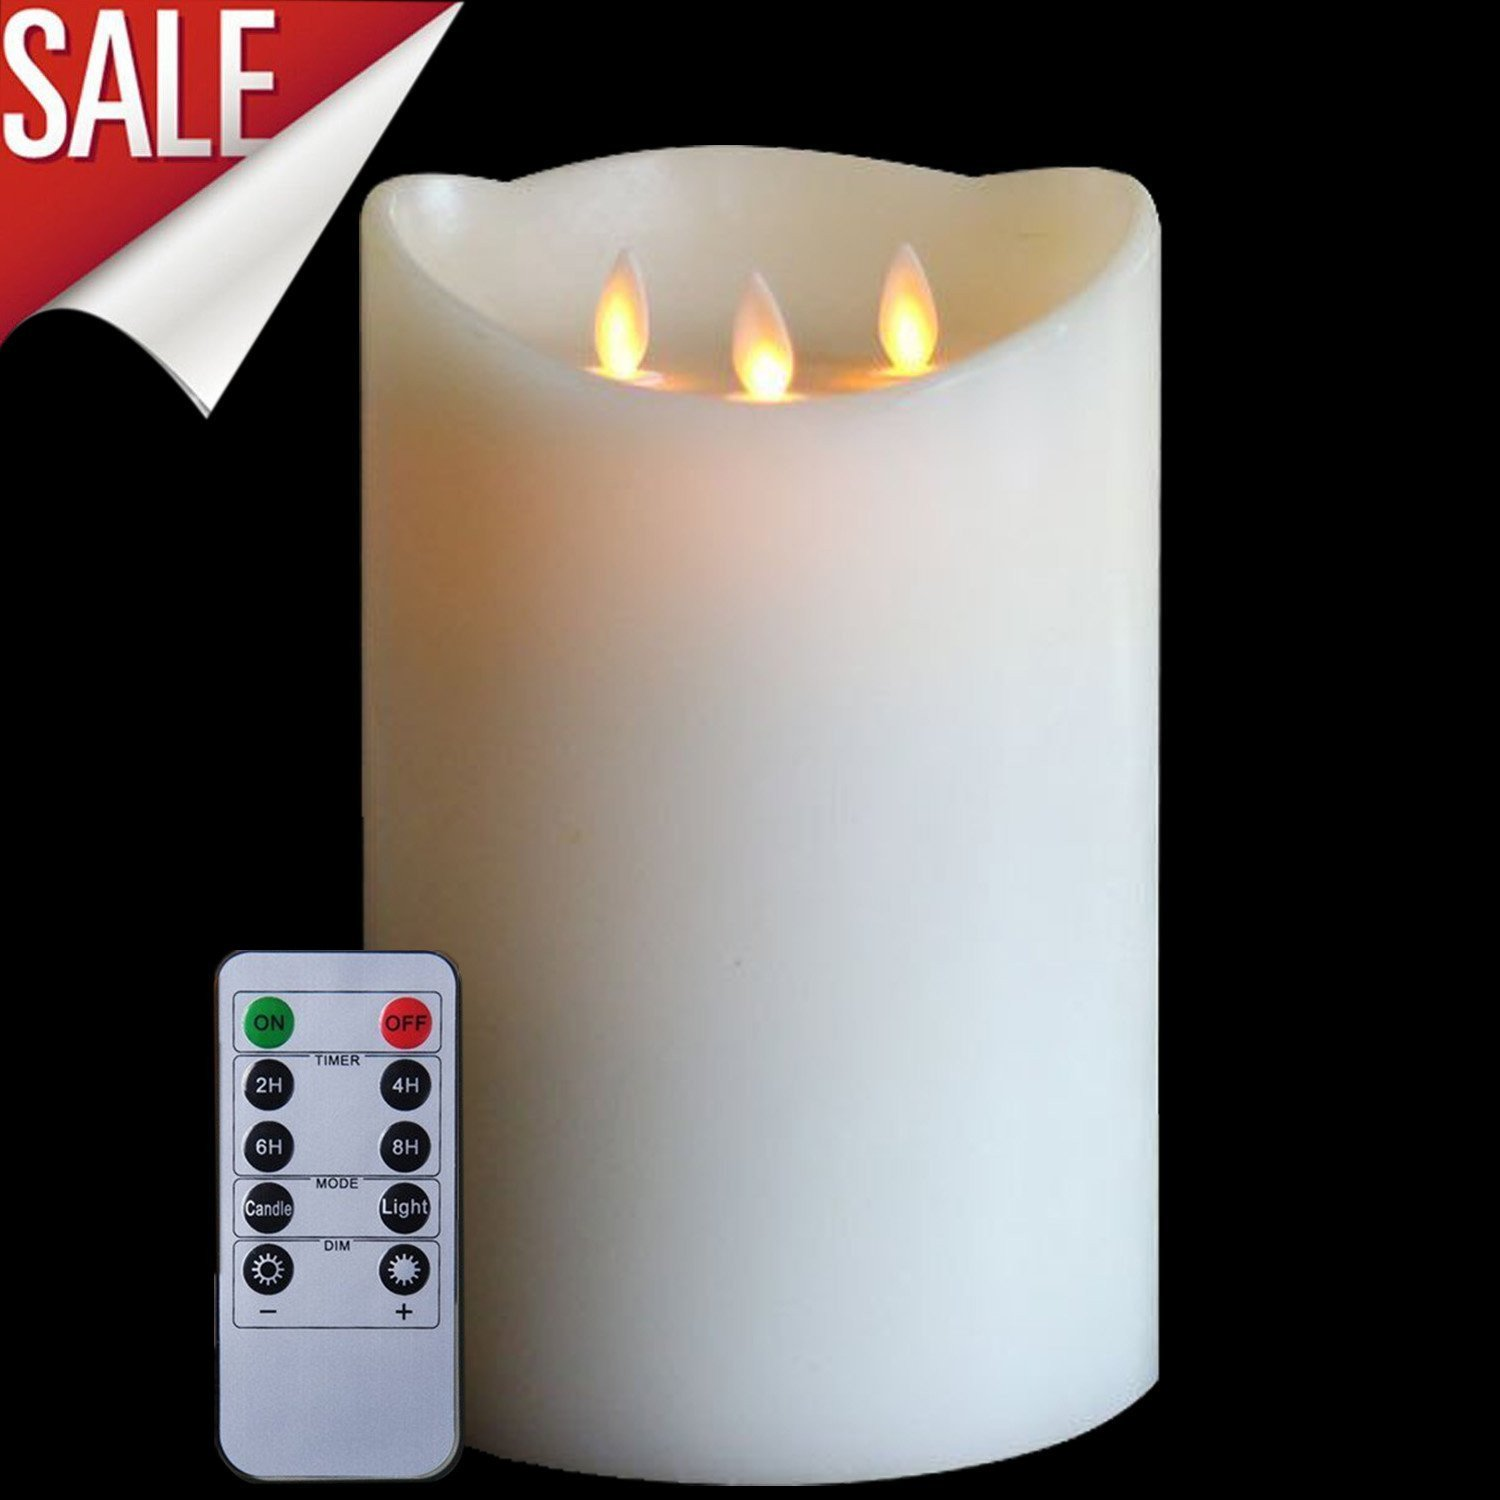 Flameless Candles,LED Votive Candles Unscented Battery Powered Candles, Pillar Candles With Remote Control Timer Perfect for Weddings, Christmas, Funerals, Souvenirs, Dia. 6''x10'' Height